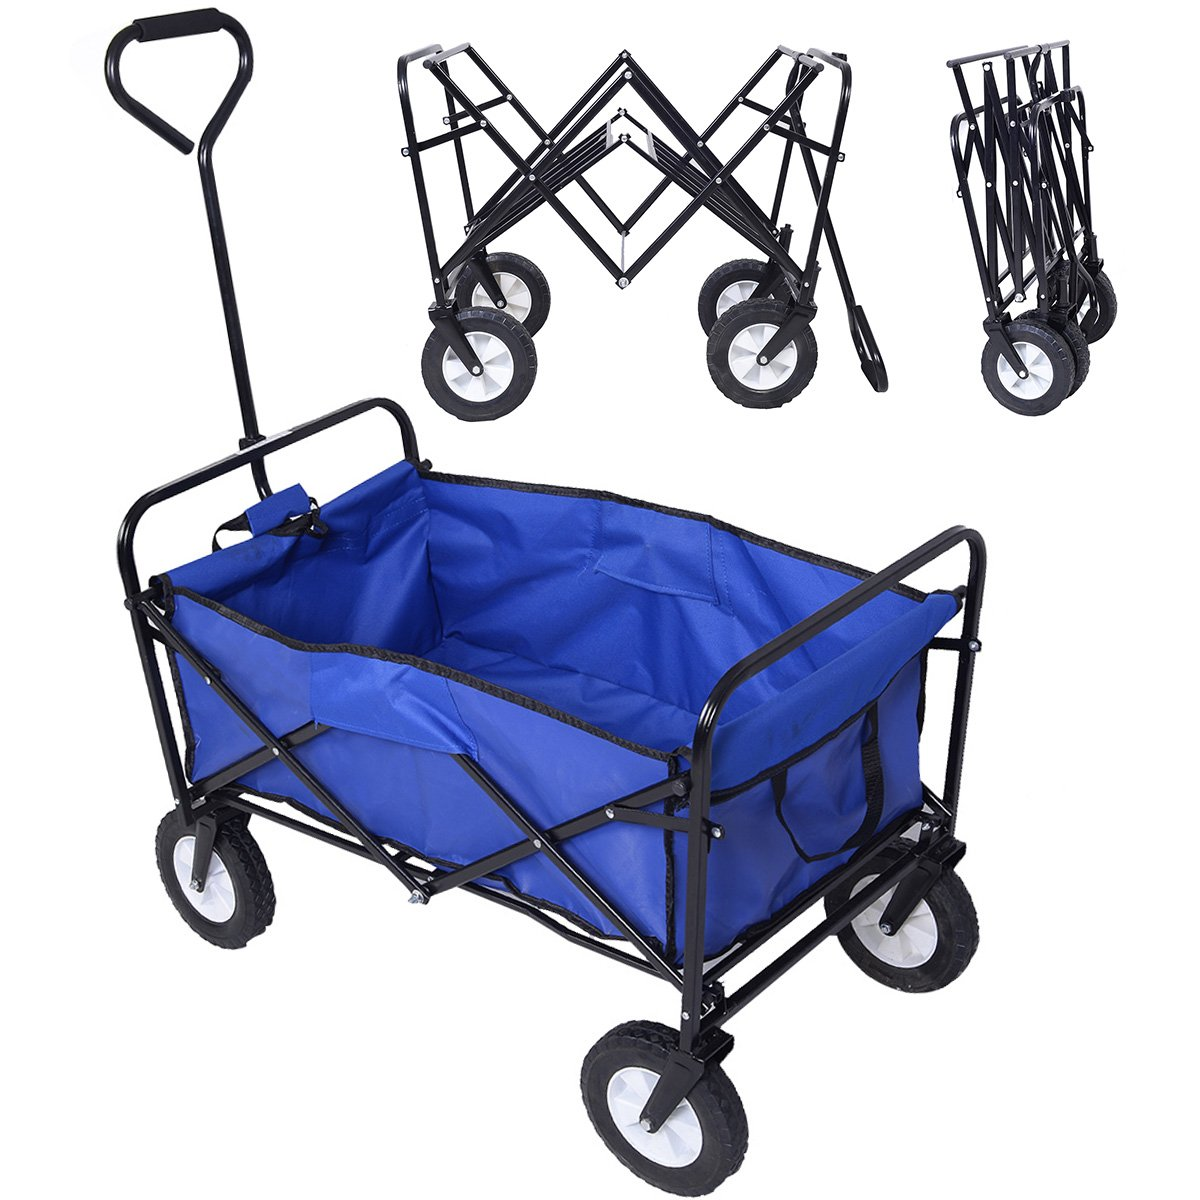 Giantex Collapsible Folding Wagon